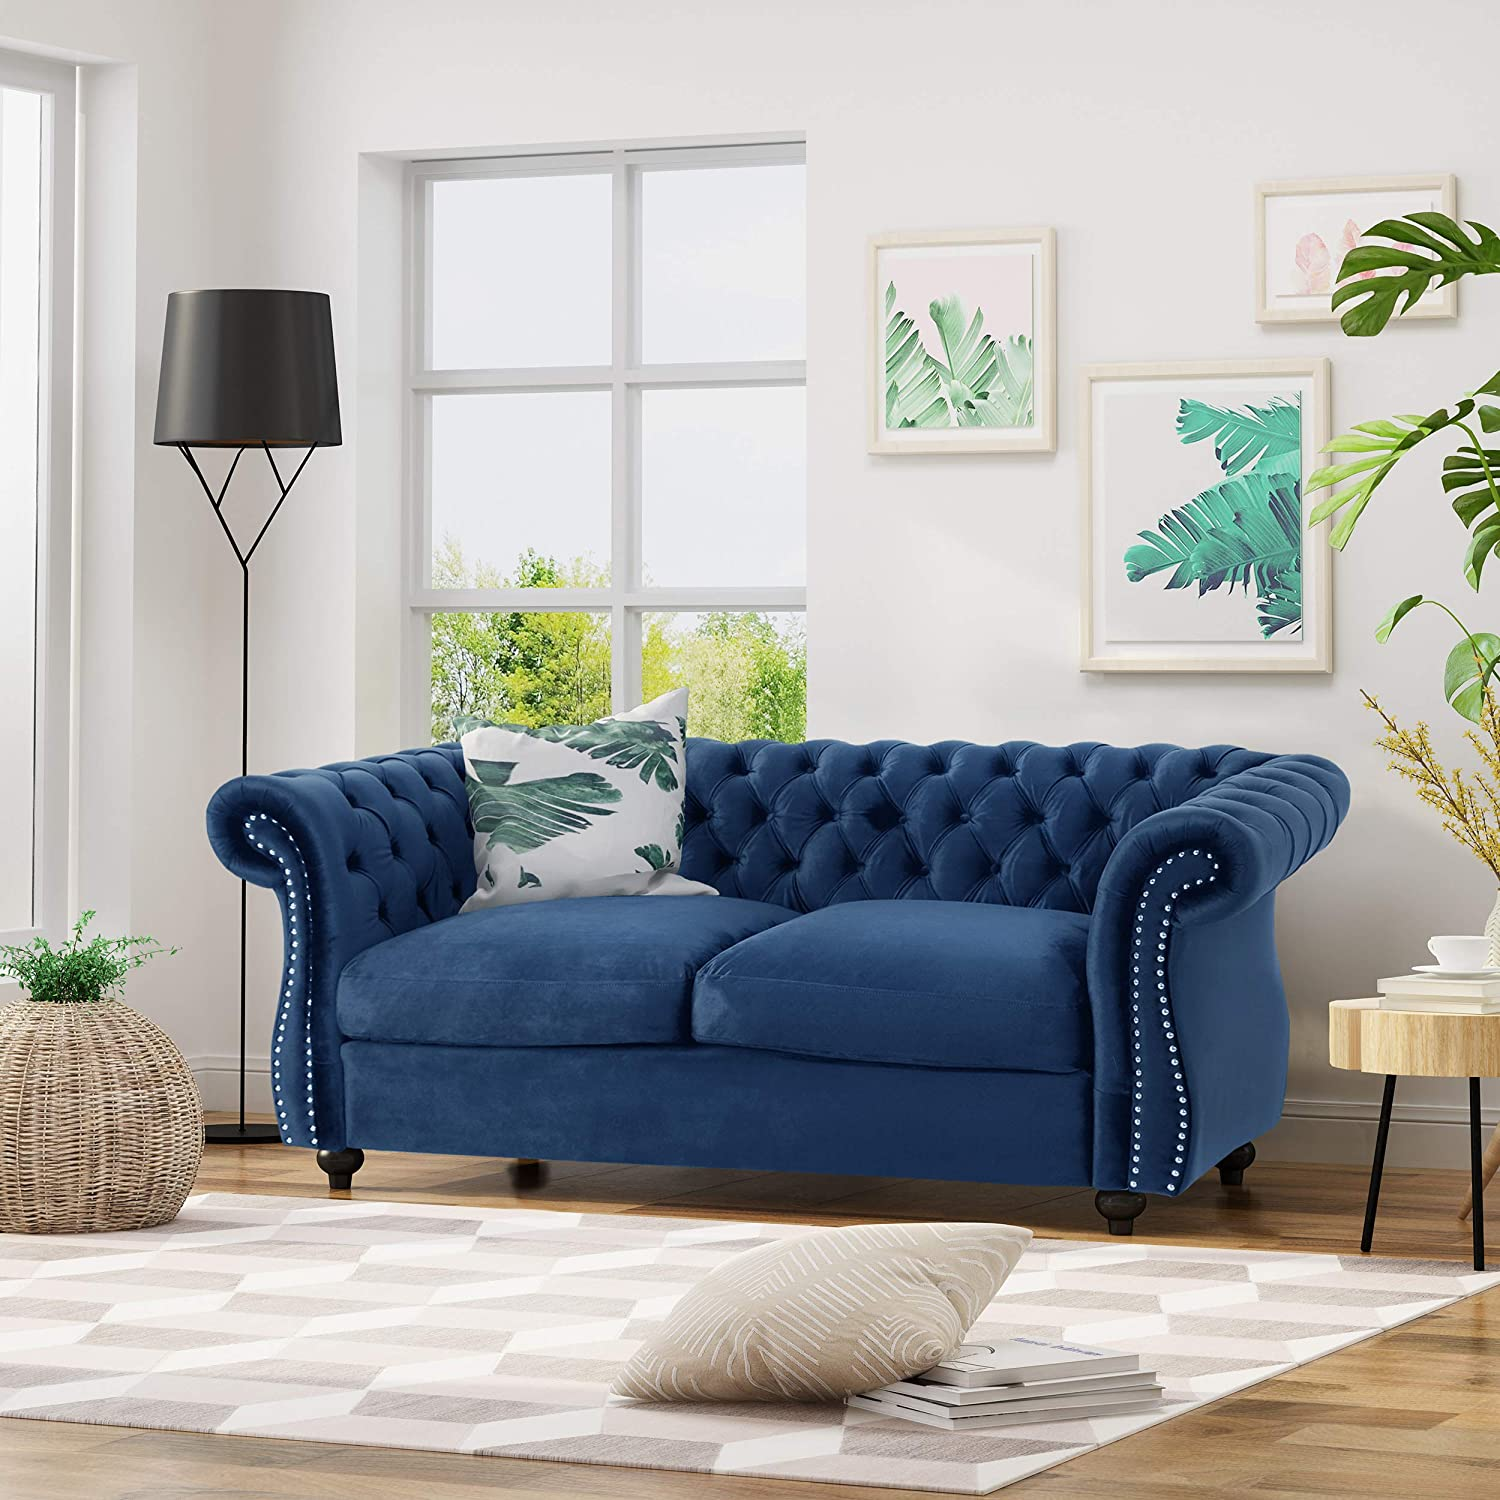 Chesterfield Loveseat Sofa, Navy Blue and Dark Brown